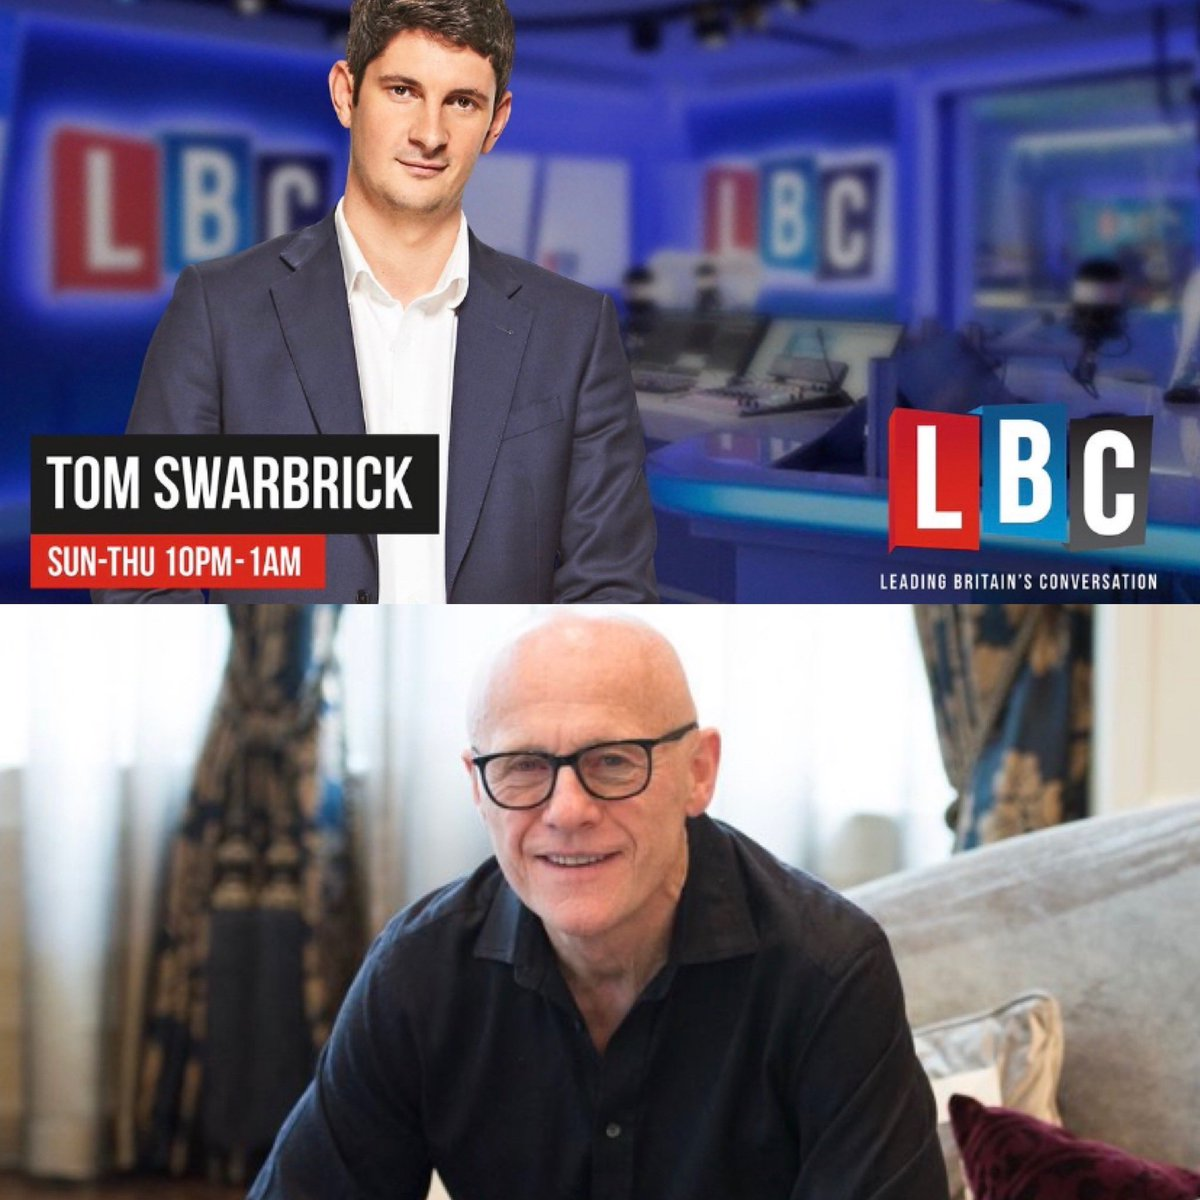 Tune into @LBC tonight at 10.30pm when @johncaudwell will talk to @TomSwarbrick1 about the new #ruleofsix and other #Covid19UK measures, #Brexit and the state of the economy in the wake of the virus  #thecangroup #canpr #johncaudwell #CaudwellPandemicRecovery #CPR📈 #lbc